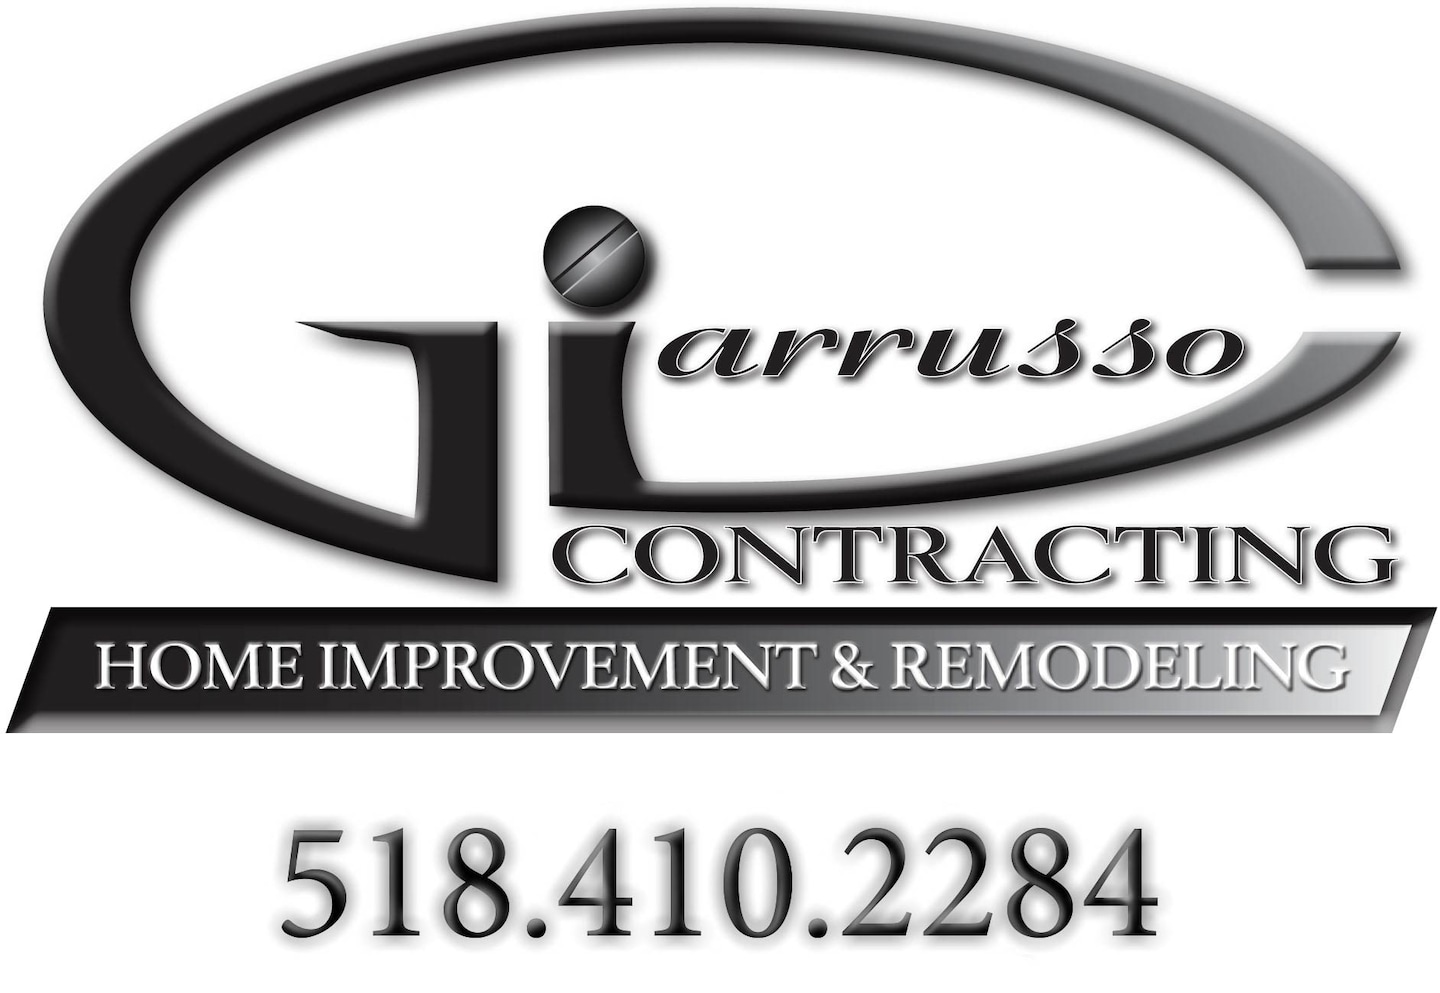 Giarrusso Contracting